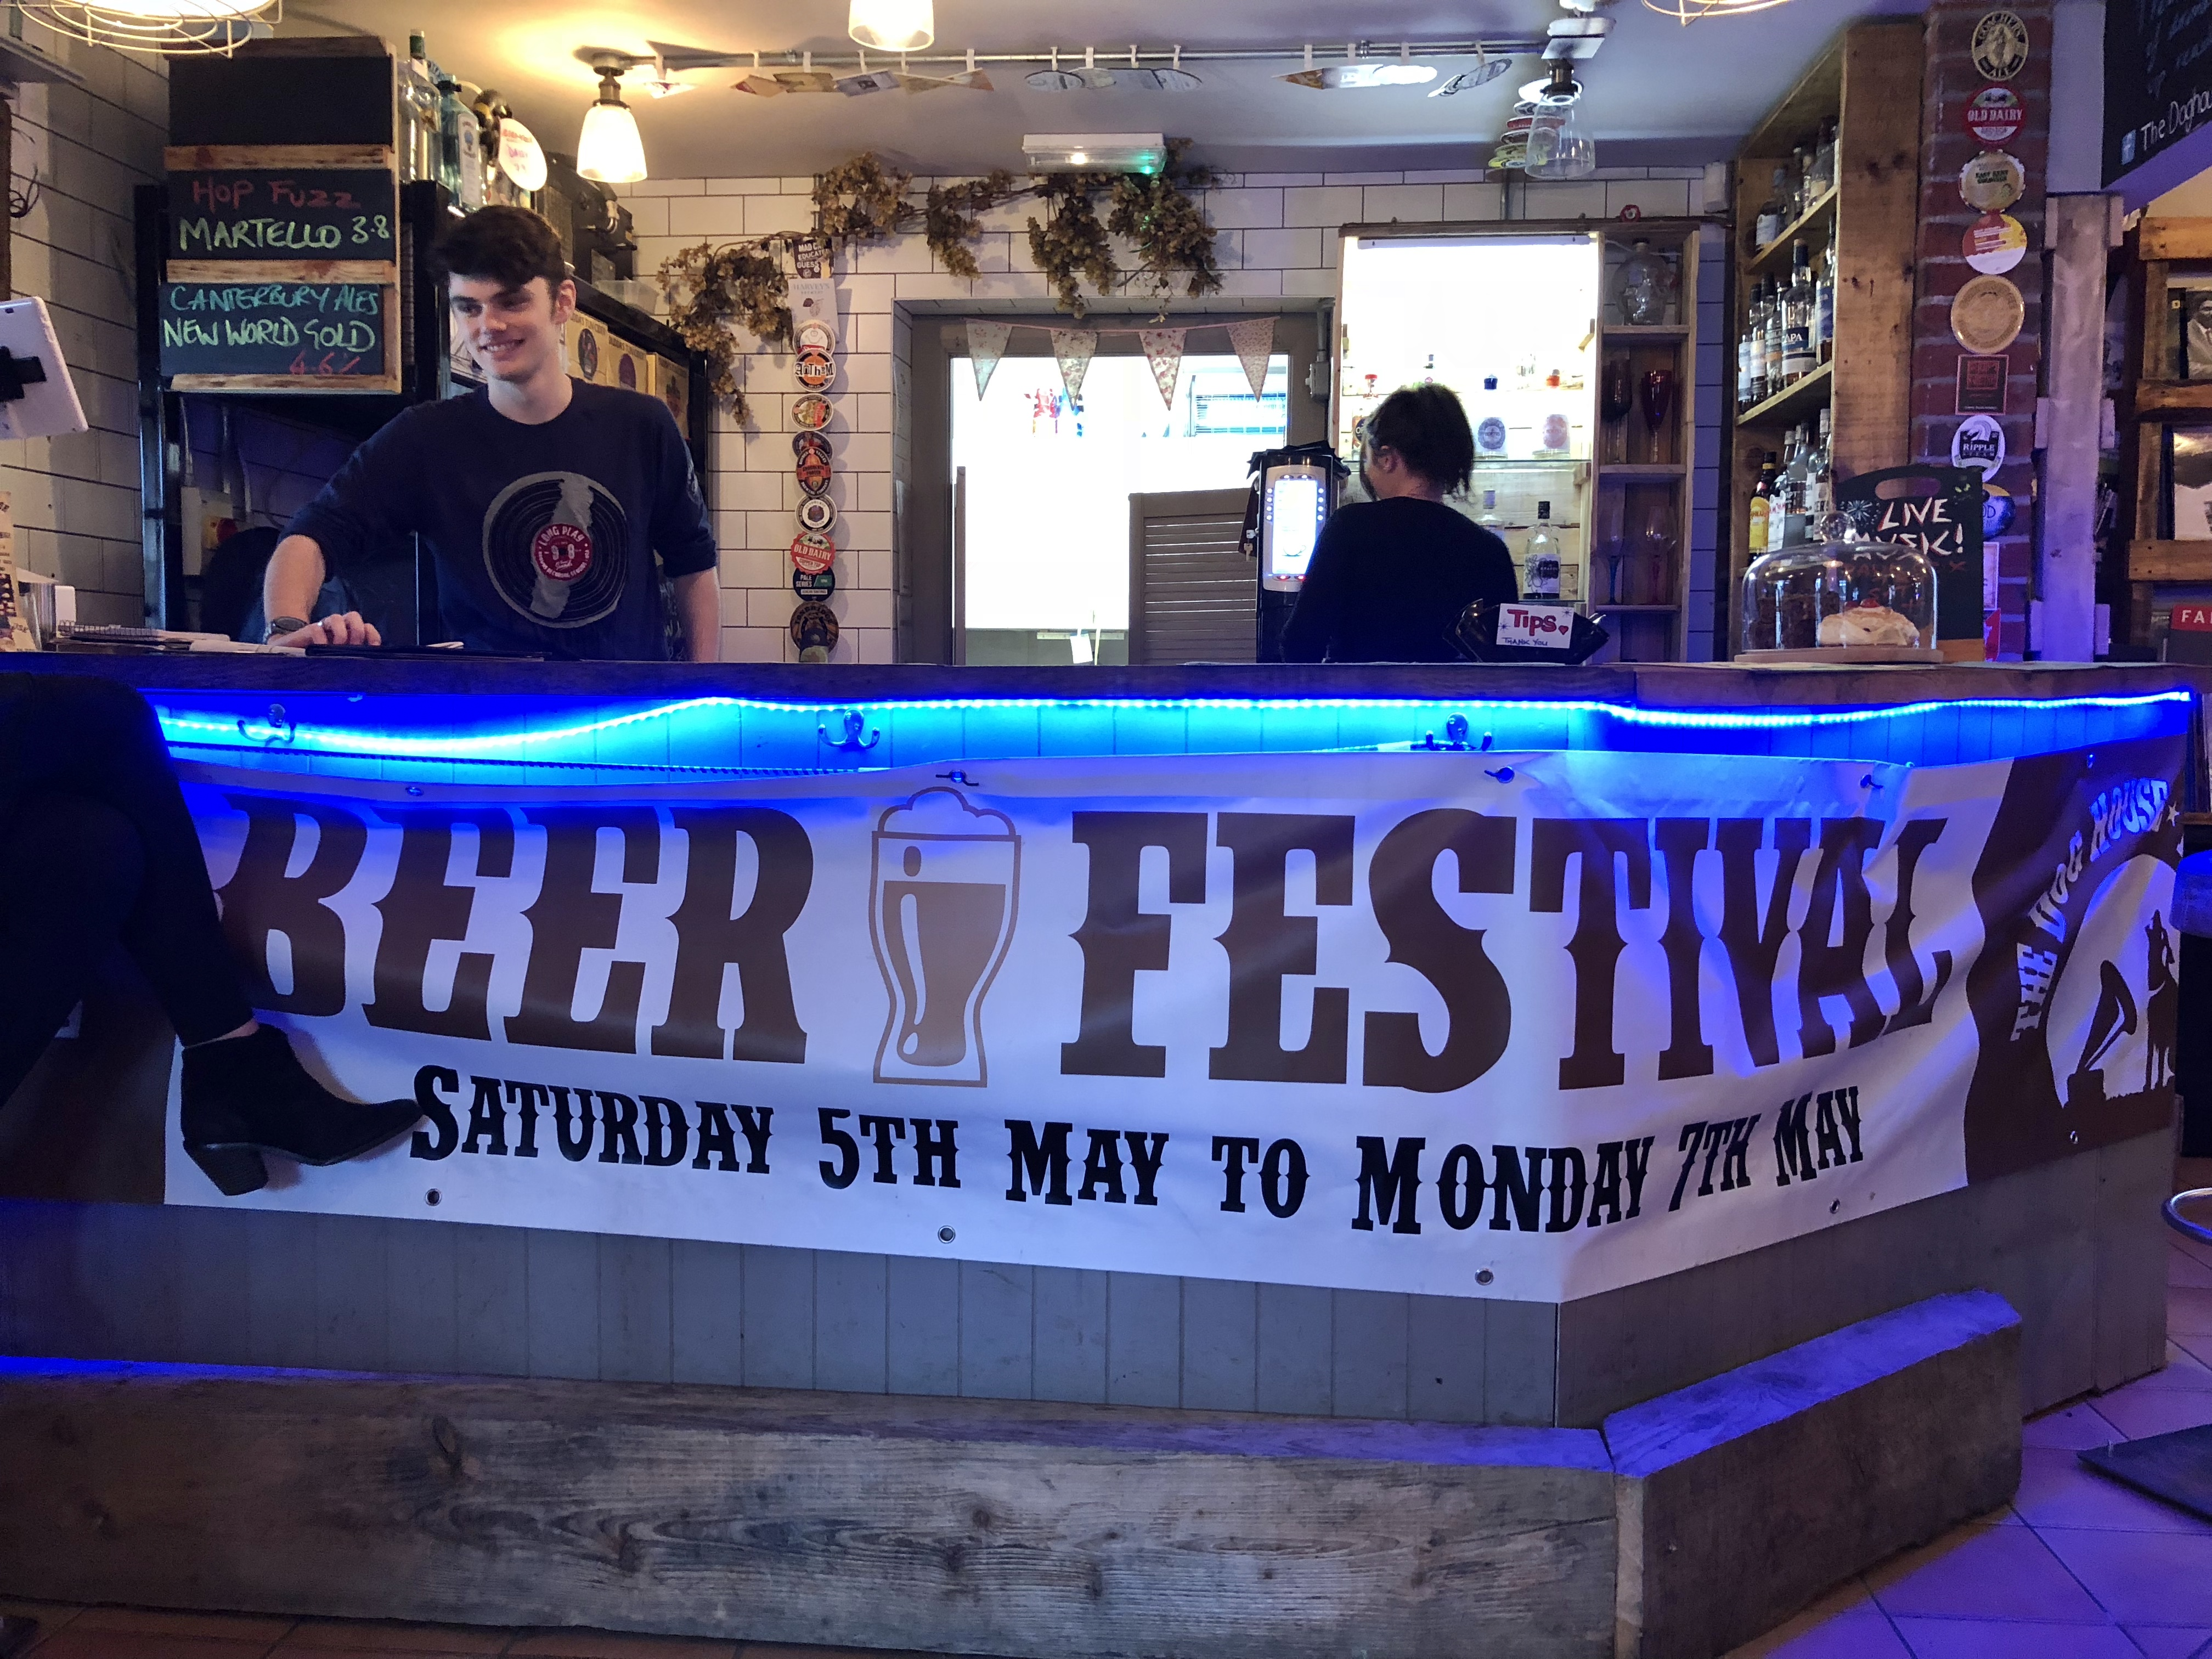 Beer Festival – Live Bands & Streetfood (4th – 6th May 2019)